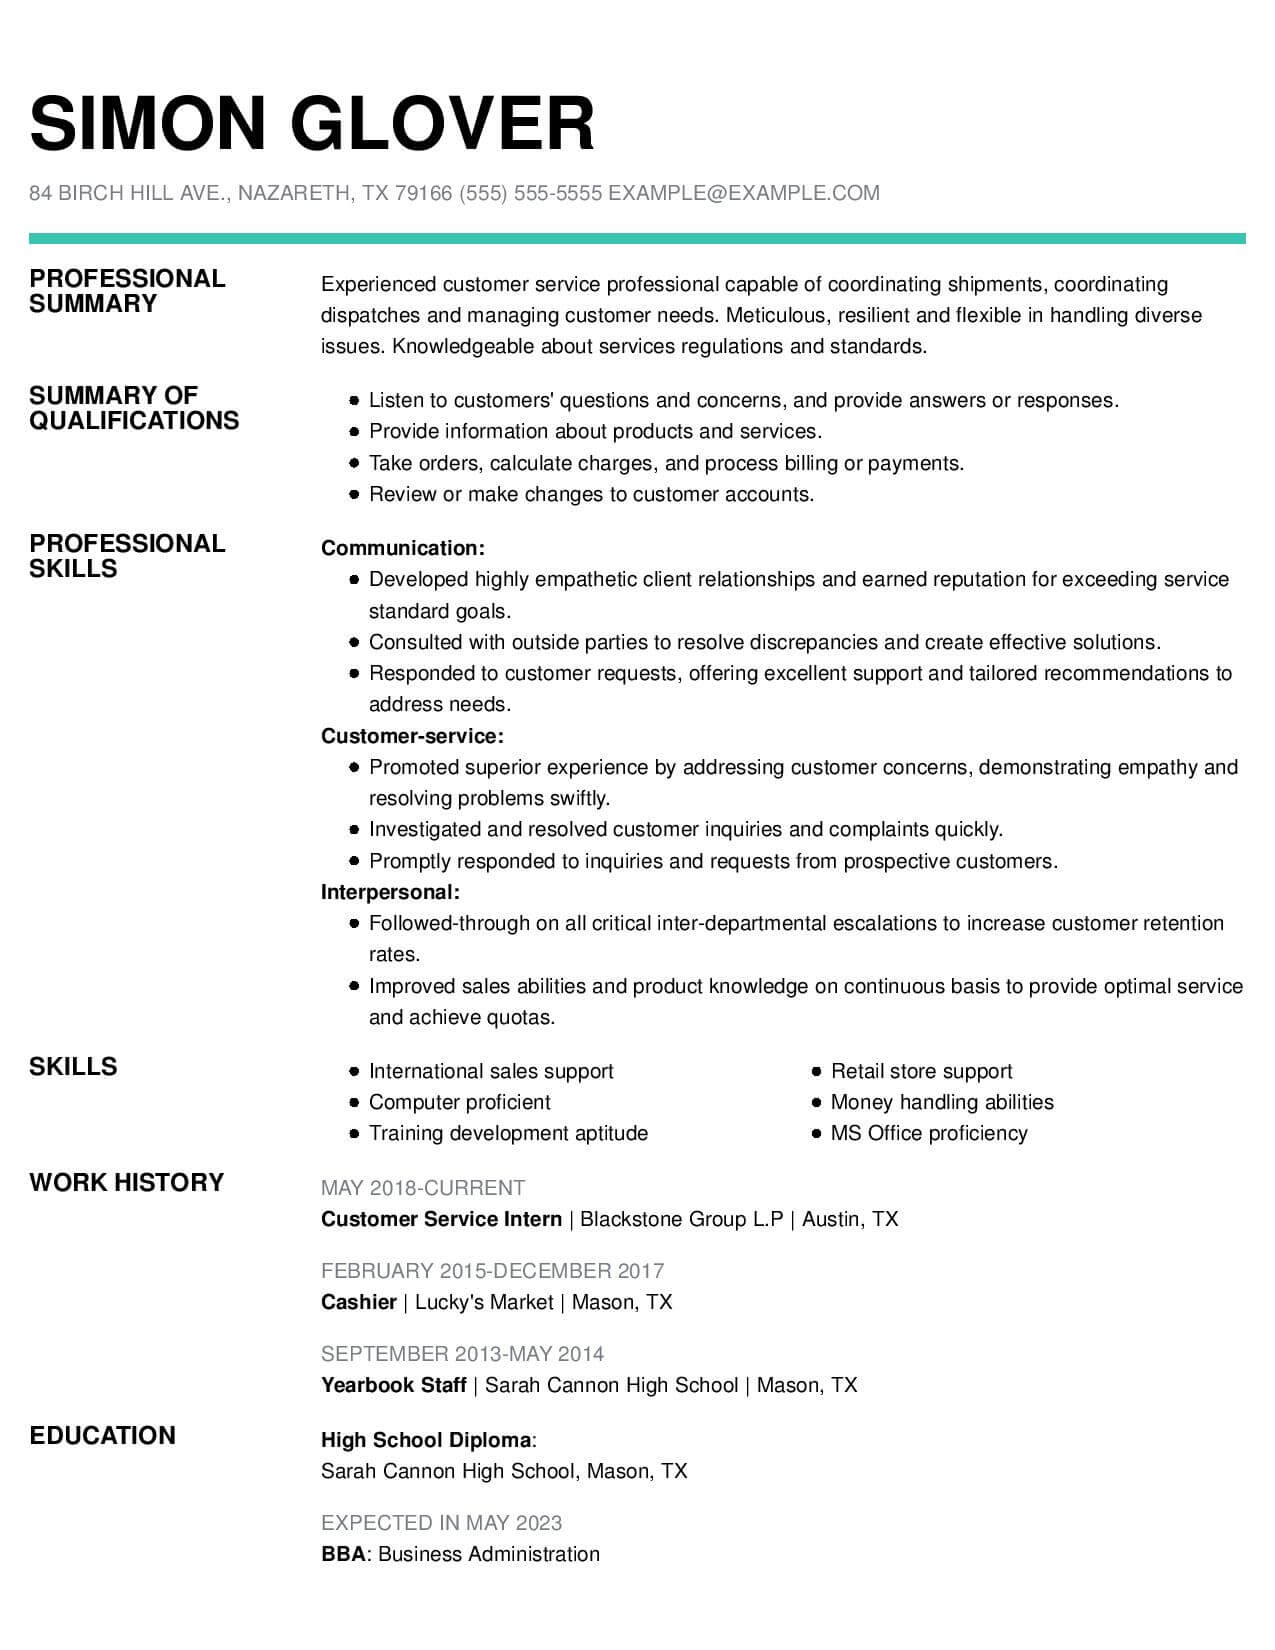 resume templates customer service livecareer template free insightful functional csintern Resume Customer Service Resume Template Free